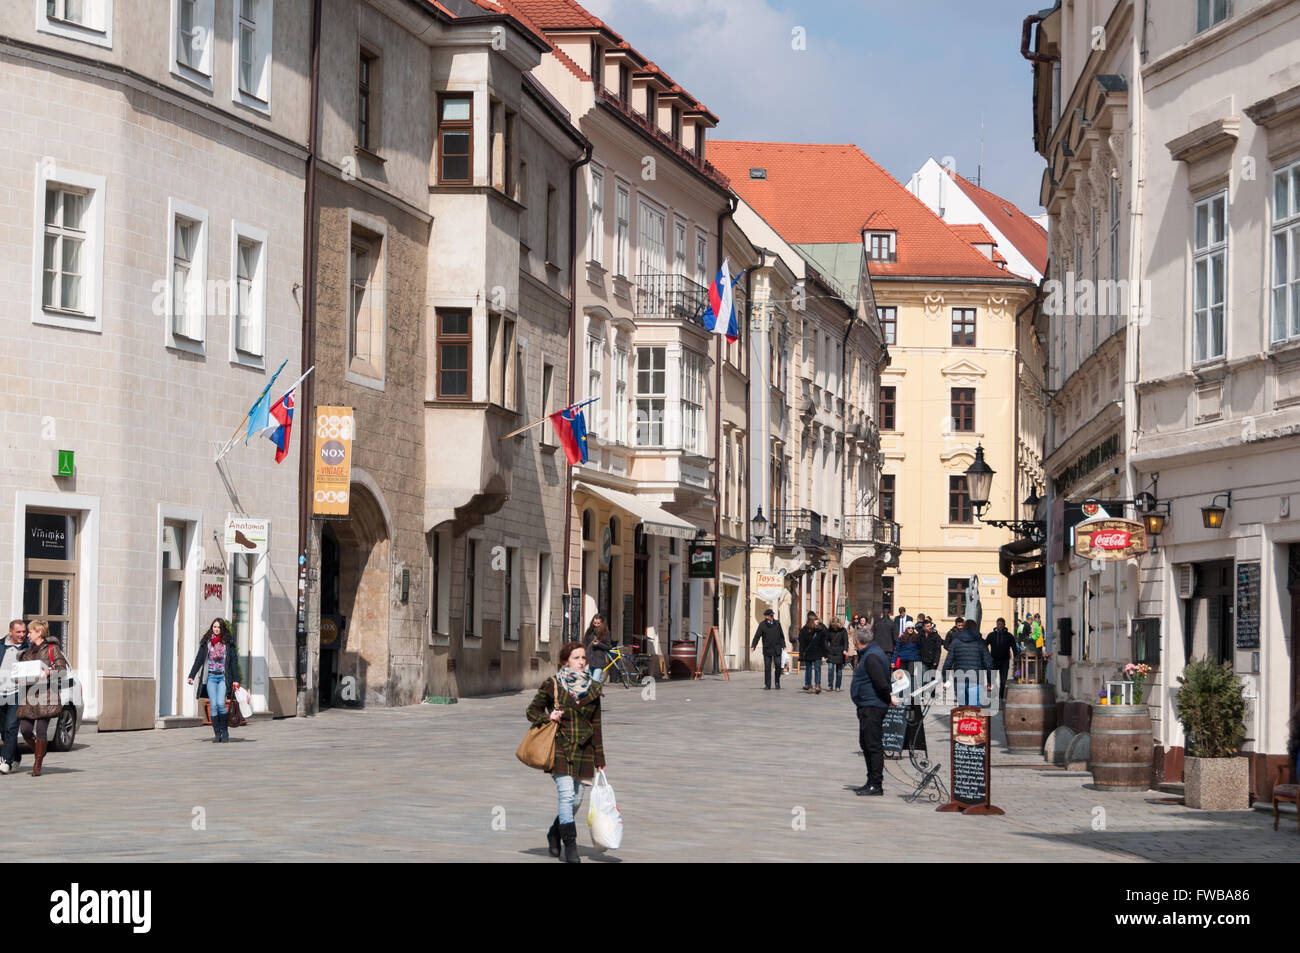 Venturska street with the Academia Istropolitana on the left, Bratislava, Slovakia Stock Photo